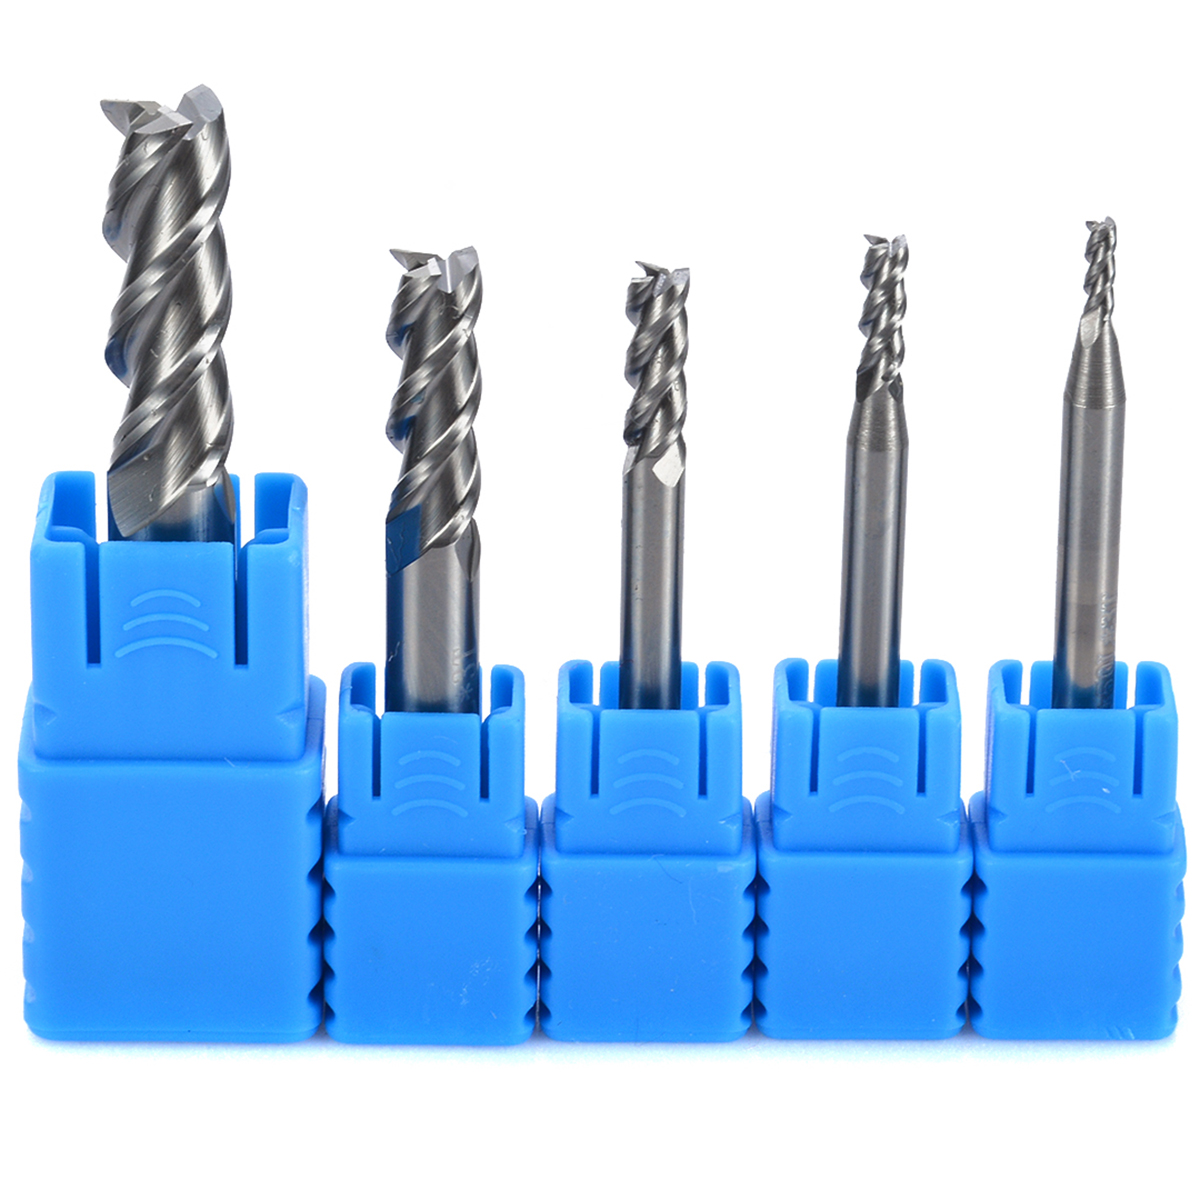 5pcs 3 Flute HRC50 Solid Carbide End Mill Tungsten Steel CNC Aluminum Milling Cutter 2/3/4/6/8mm yft 5pcs set tungsten carbide milling cutter 3 4 5 6 8mm 4 flute end mills cnc router bit for cutting metal tools